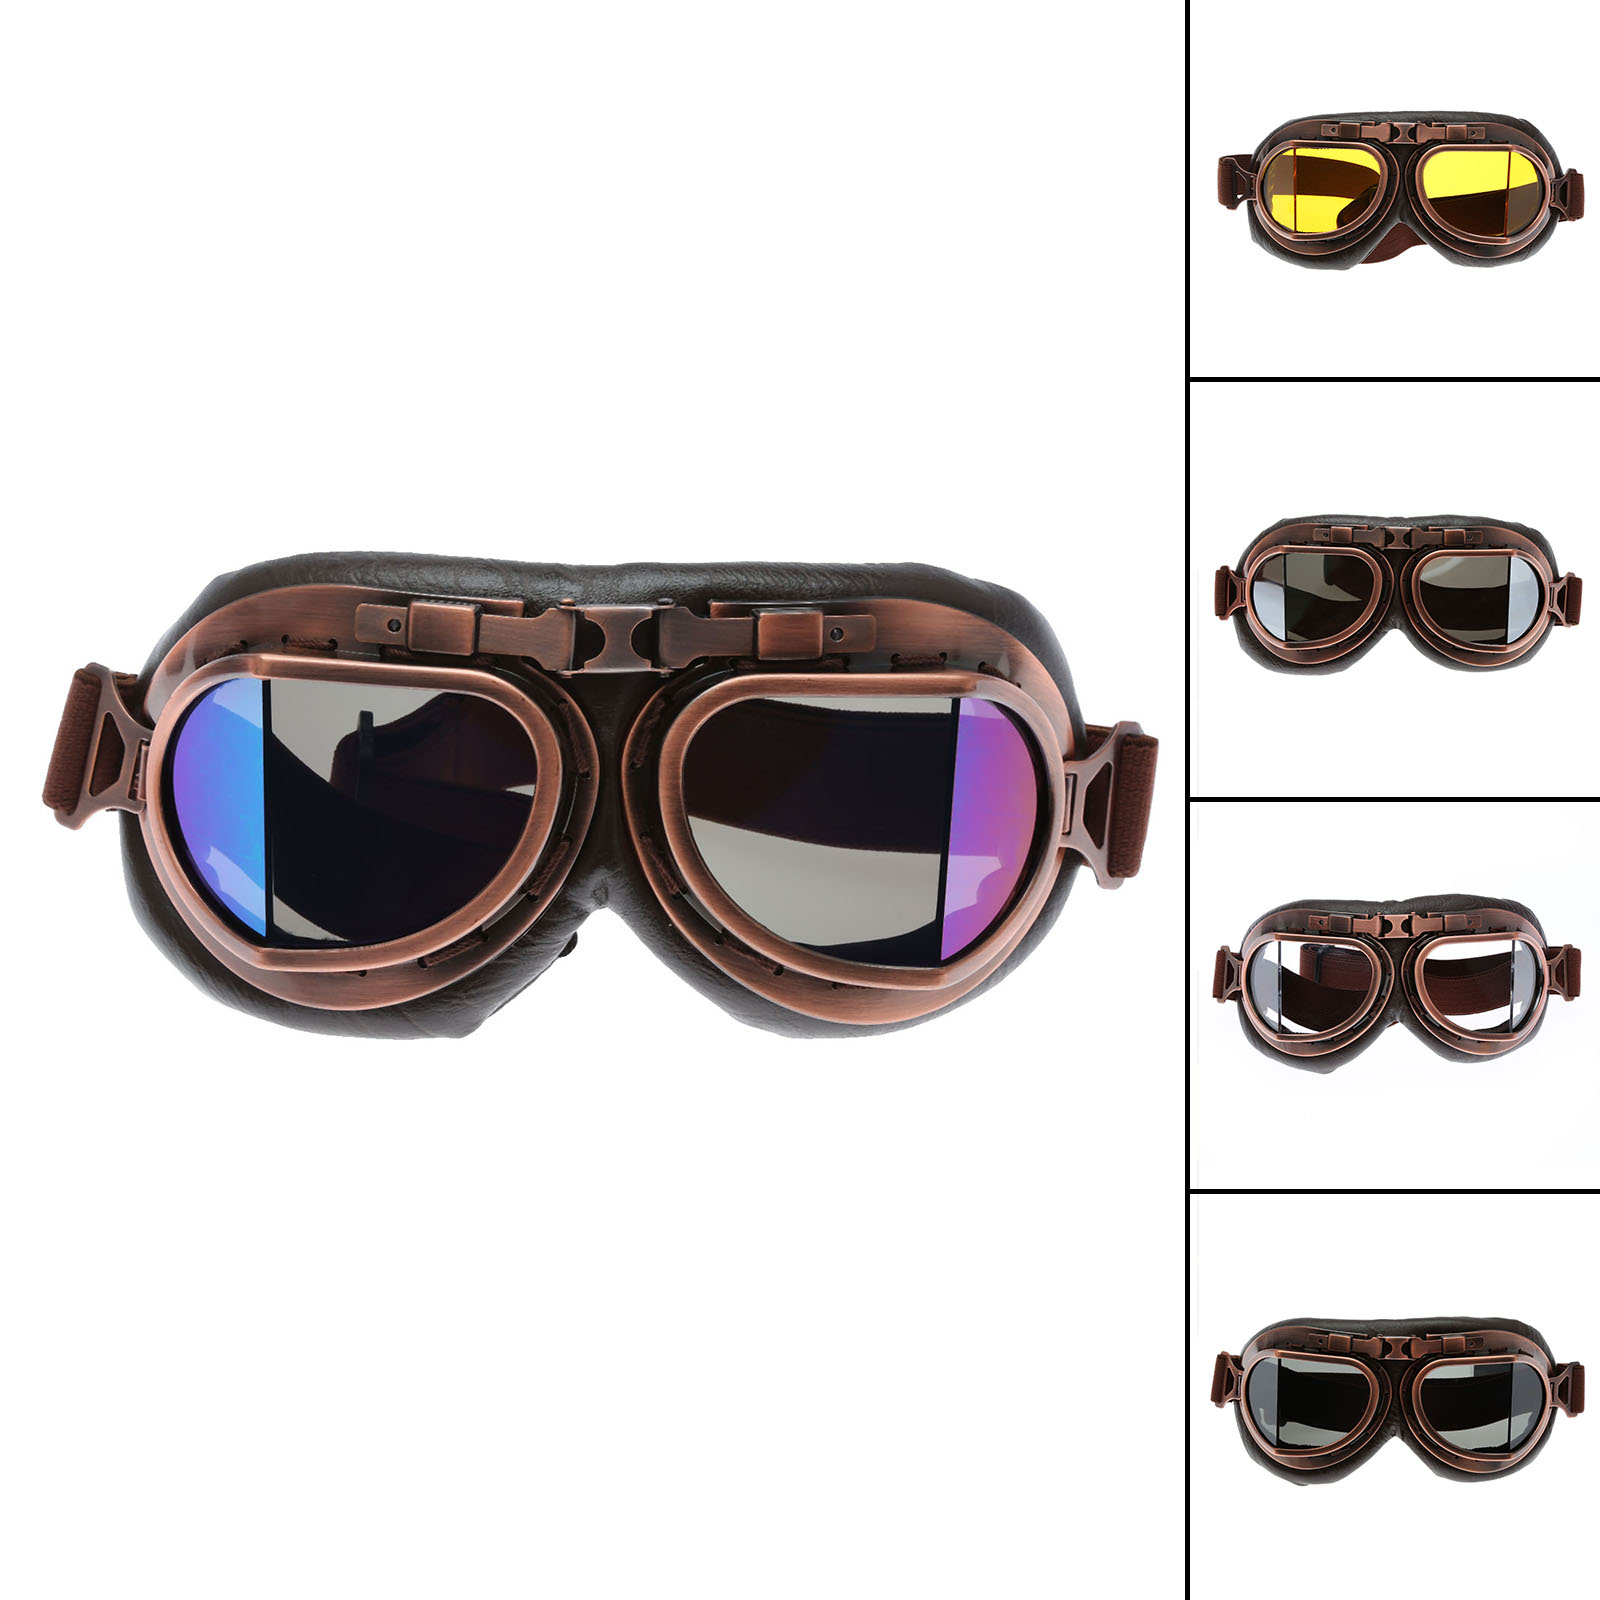 Motosikal Goggle Glasses Vintage Motocross Goggles Classic Retro Aviator Pilot Cruiser Steampunk ATV Bike UV Protection Copper